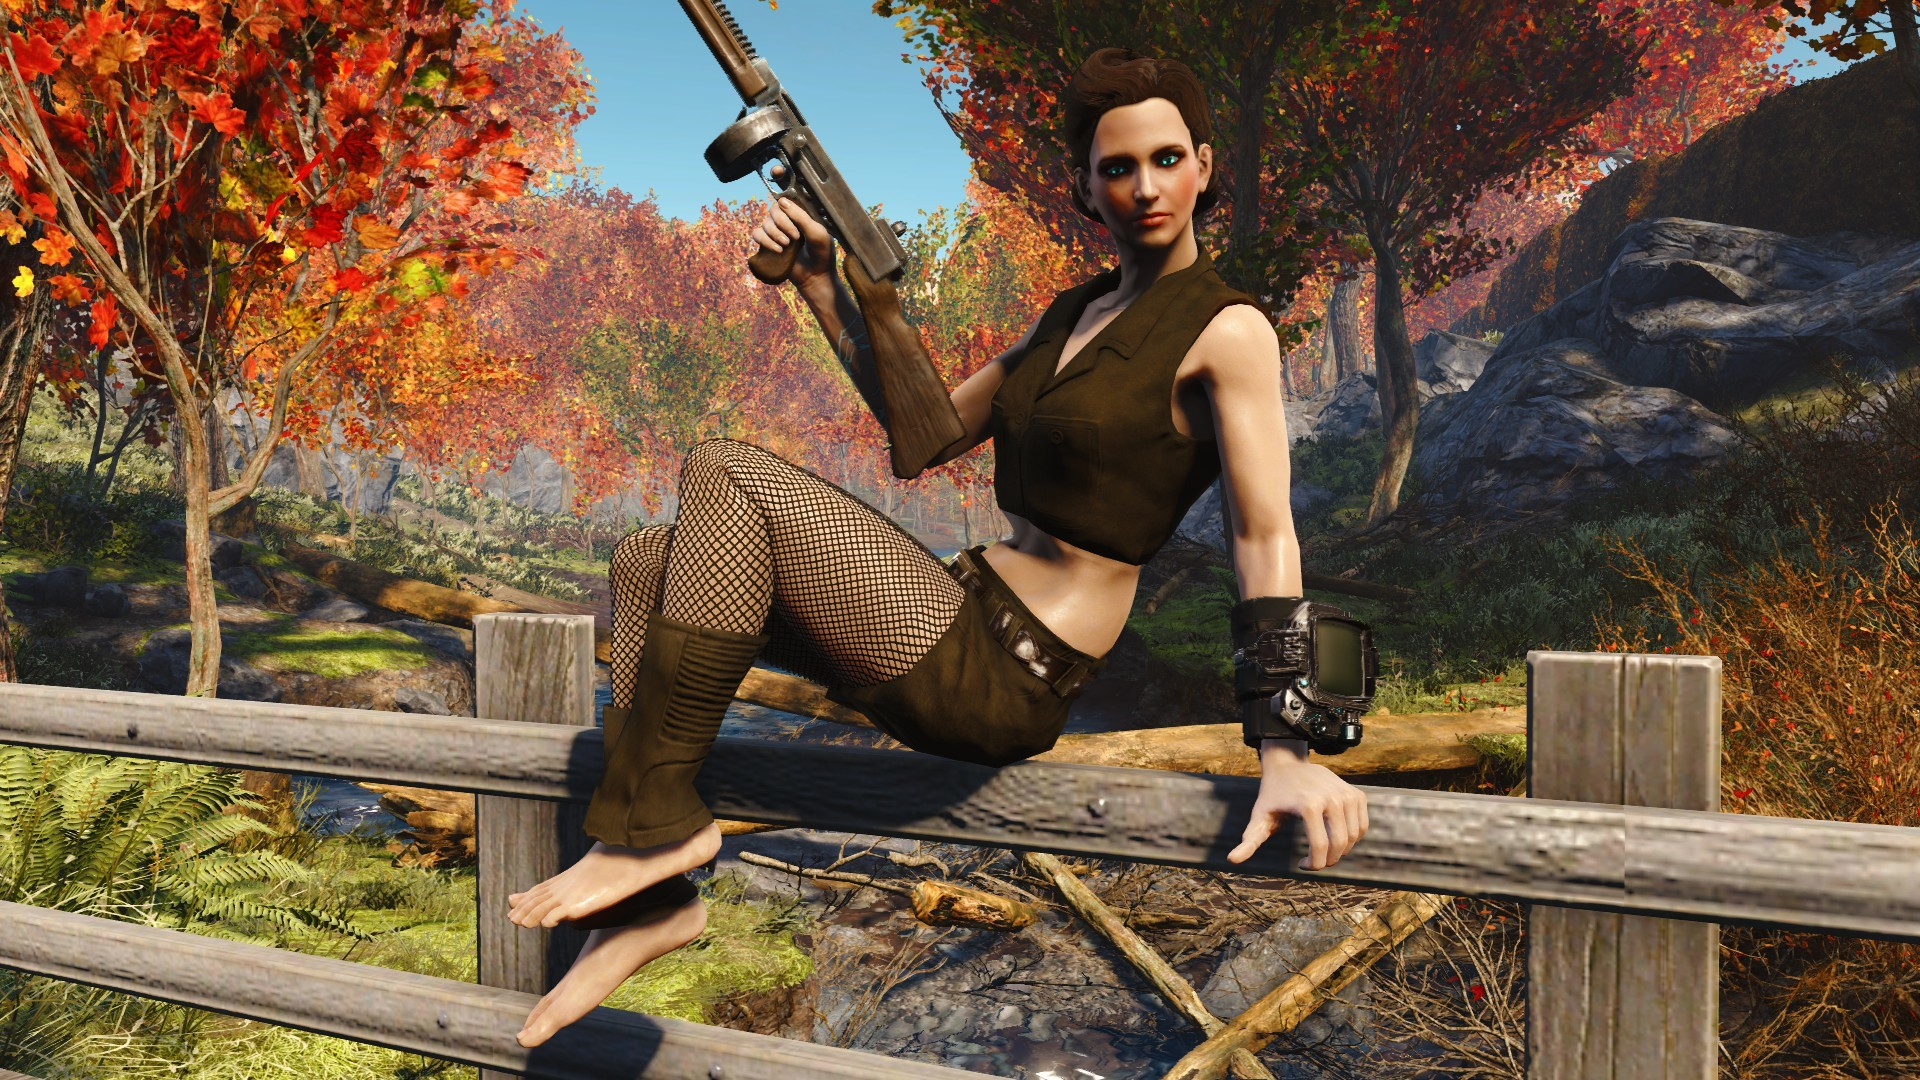 Military Pin-Up Outfit Pack (EVB-CBBE) (AWKCR-AE) at Fallout 4 Nexus – Mods  and community